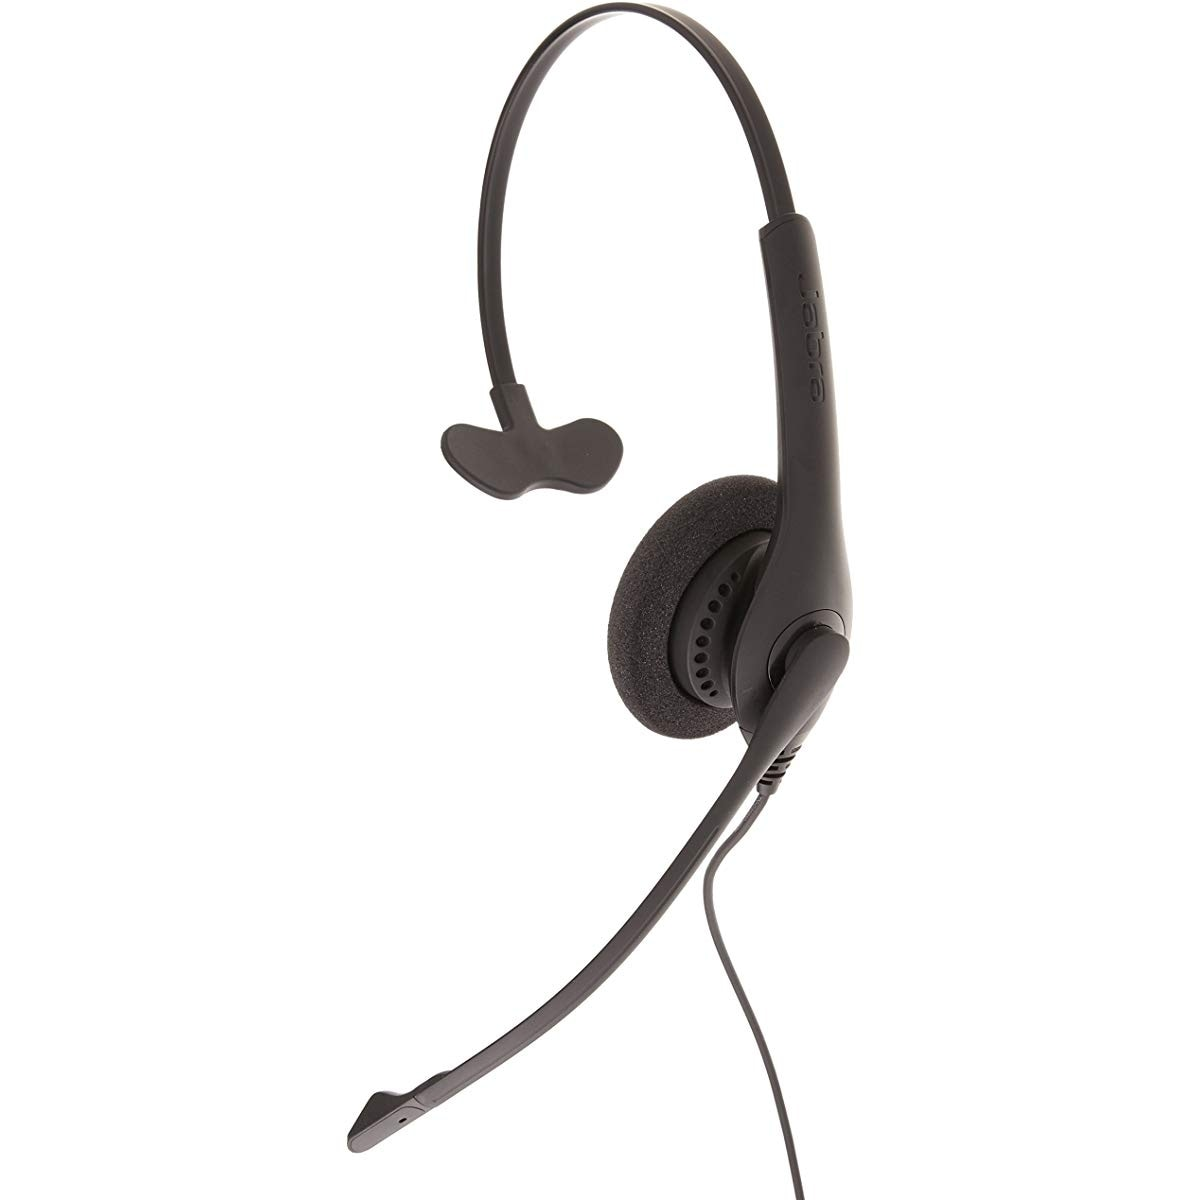 Shop Jabra BIZ 1900 Mono Headset Replaced by BIZ 1500 QD Mono Corded